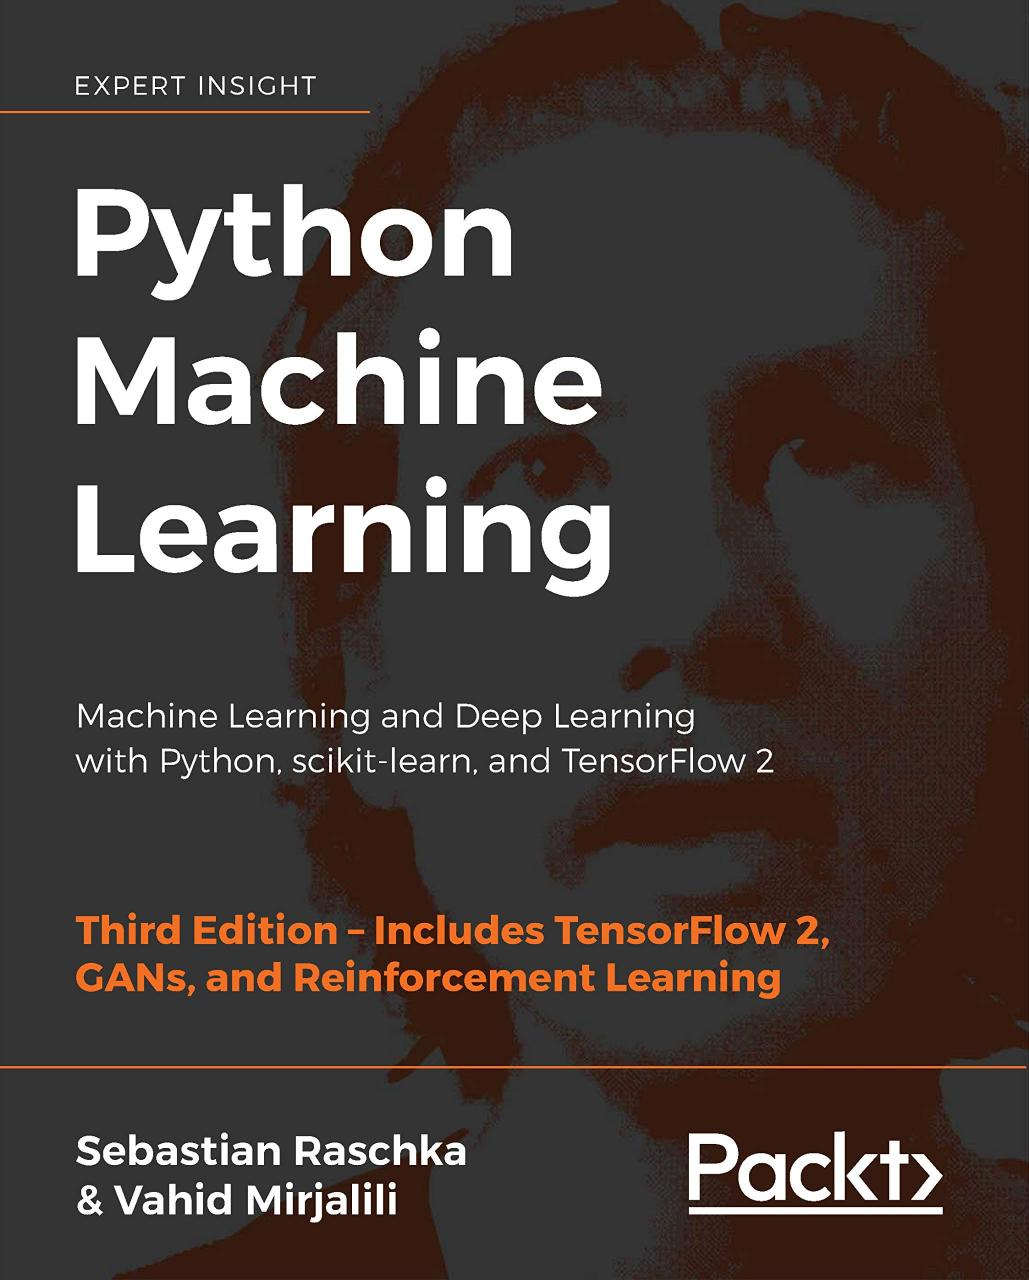 Python Machine Learning/Raschka